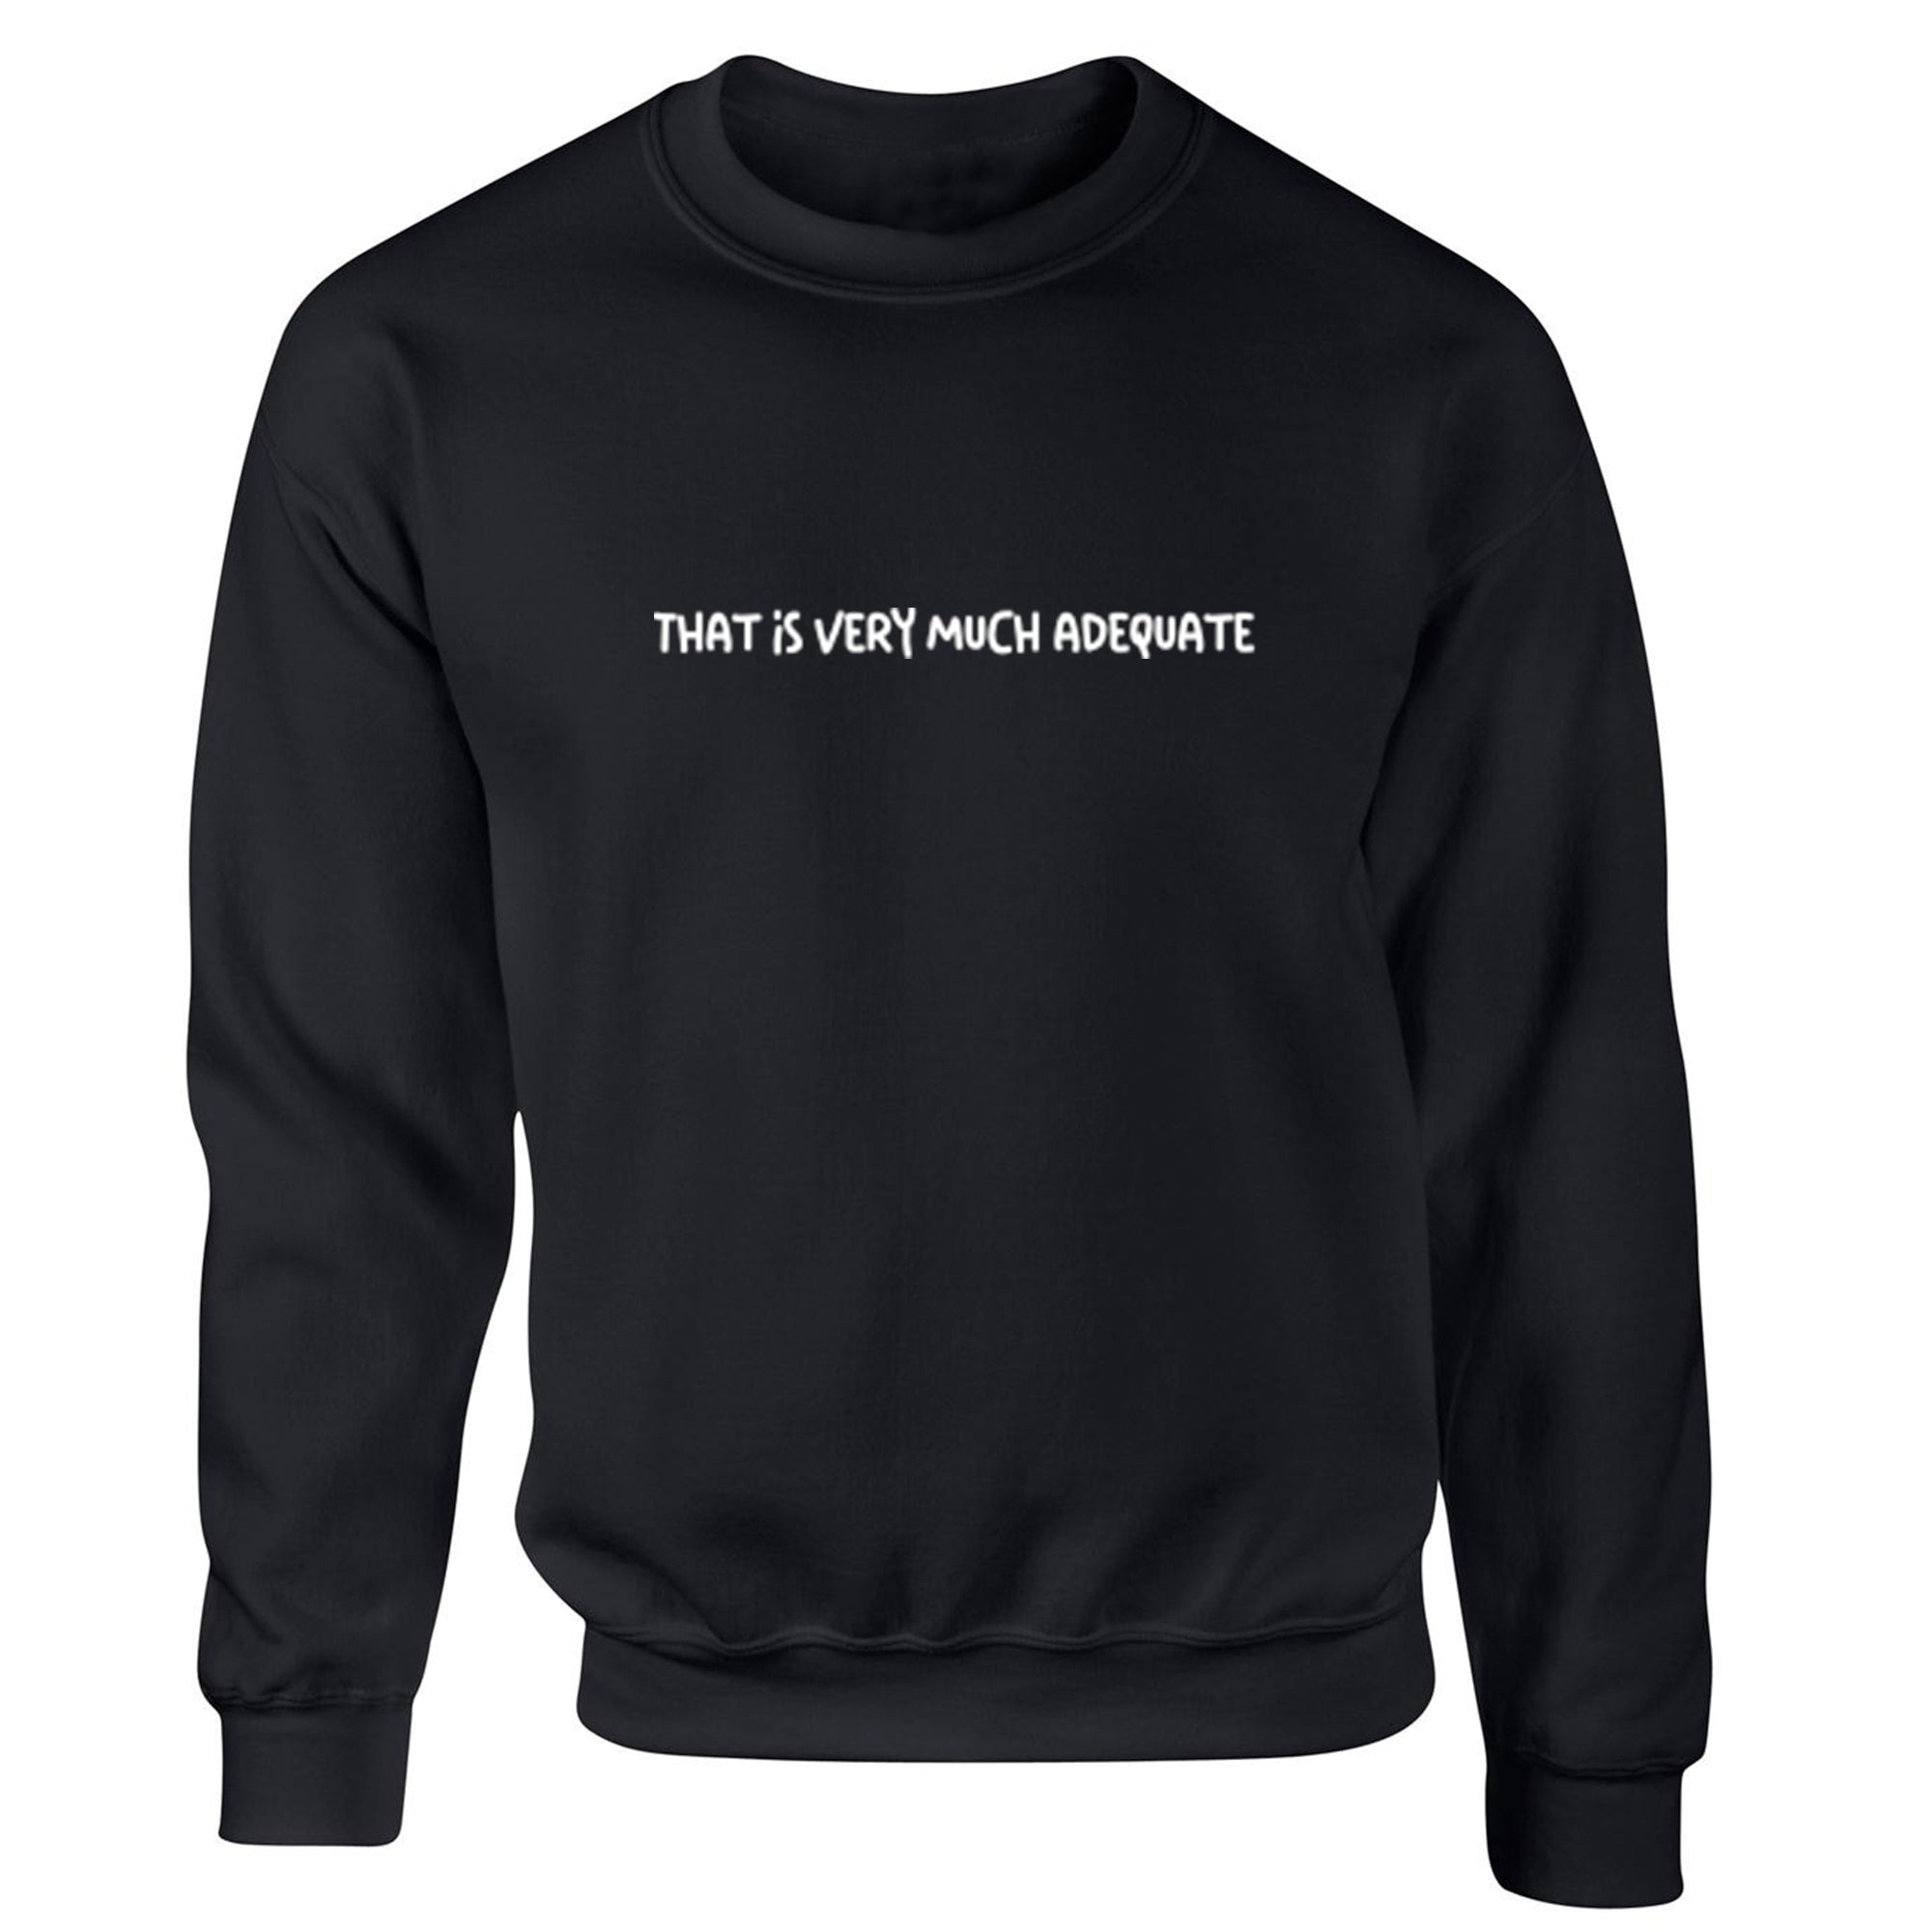 That Is Very Much Adequate Unisex Jumper S1211 - Illustrated Identity Ltd.